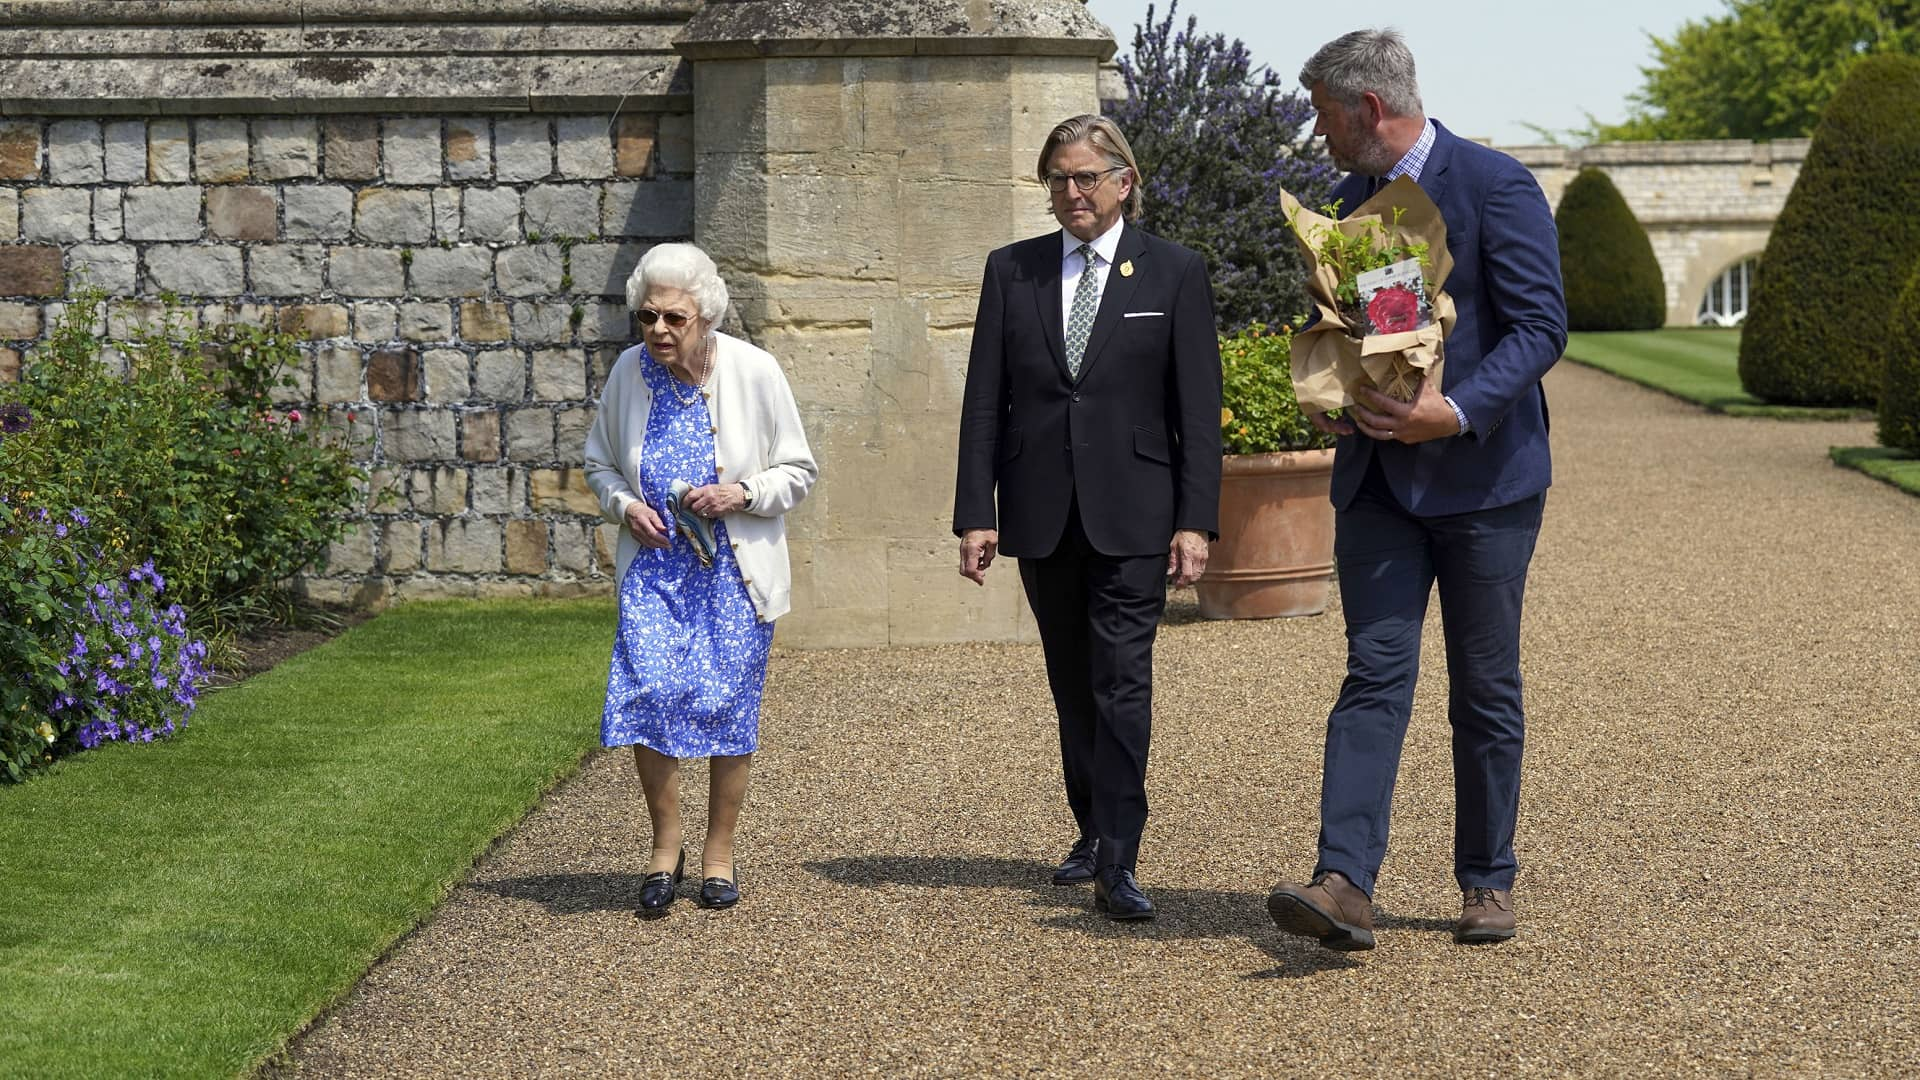 Prince Philip 'wasn't looking forward' to centenary 'fuss'